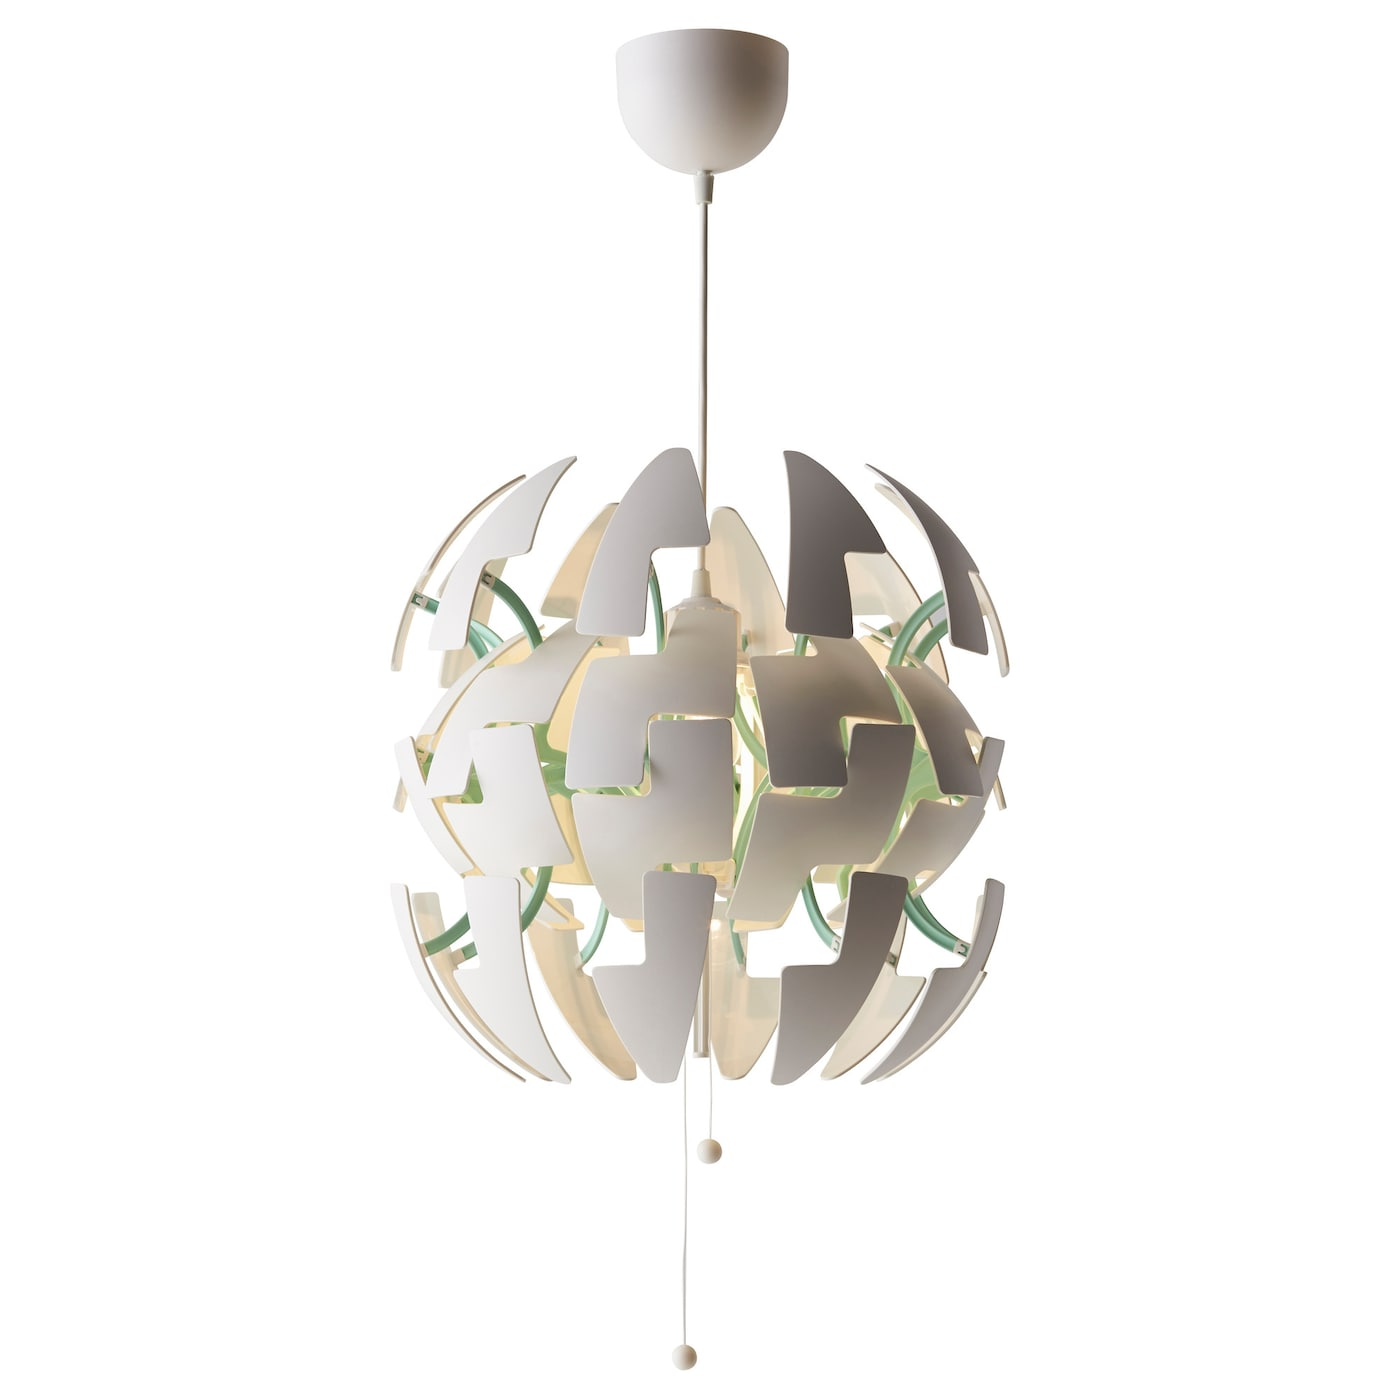 IKEA IKEA PS 2014 Pendant Lamp Gives Decorative Patterns On The Ceiling And  On The Wall